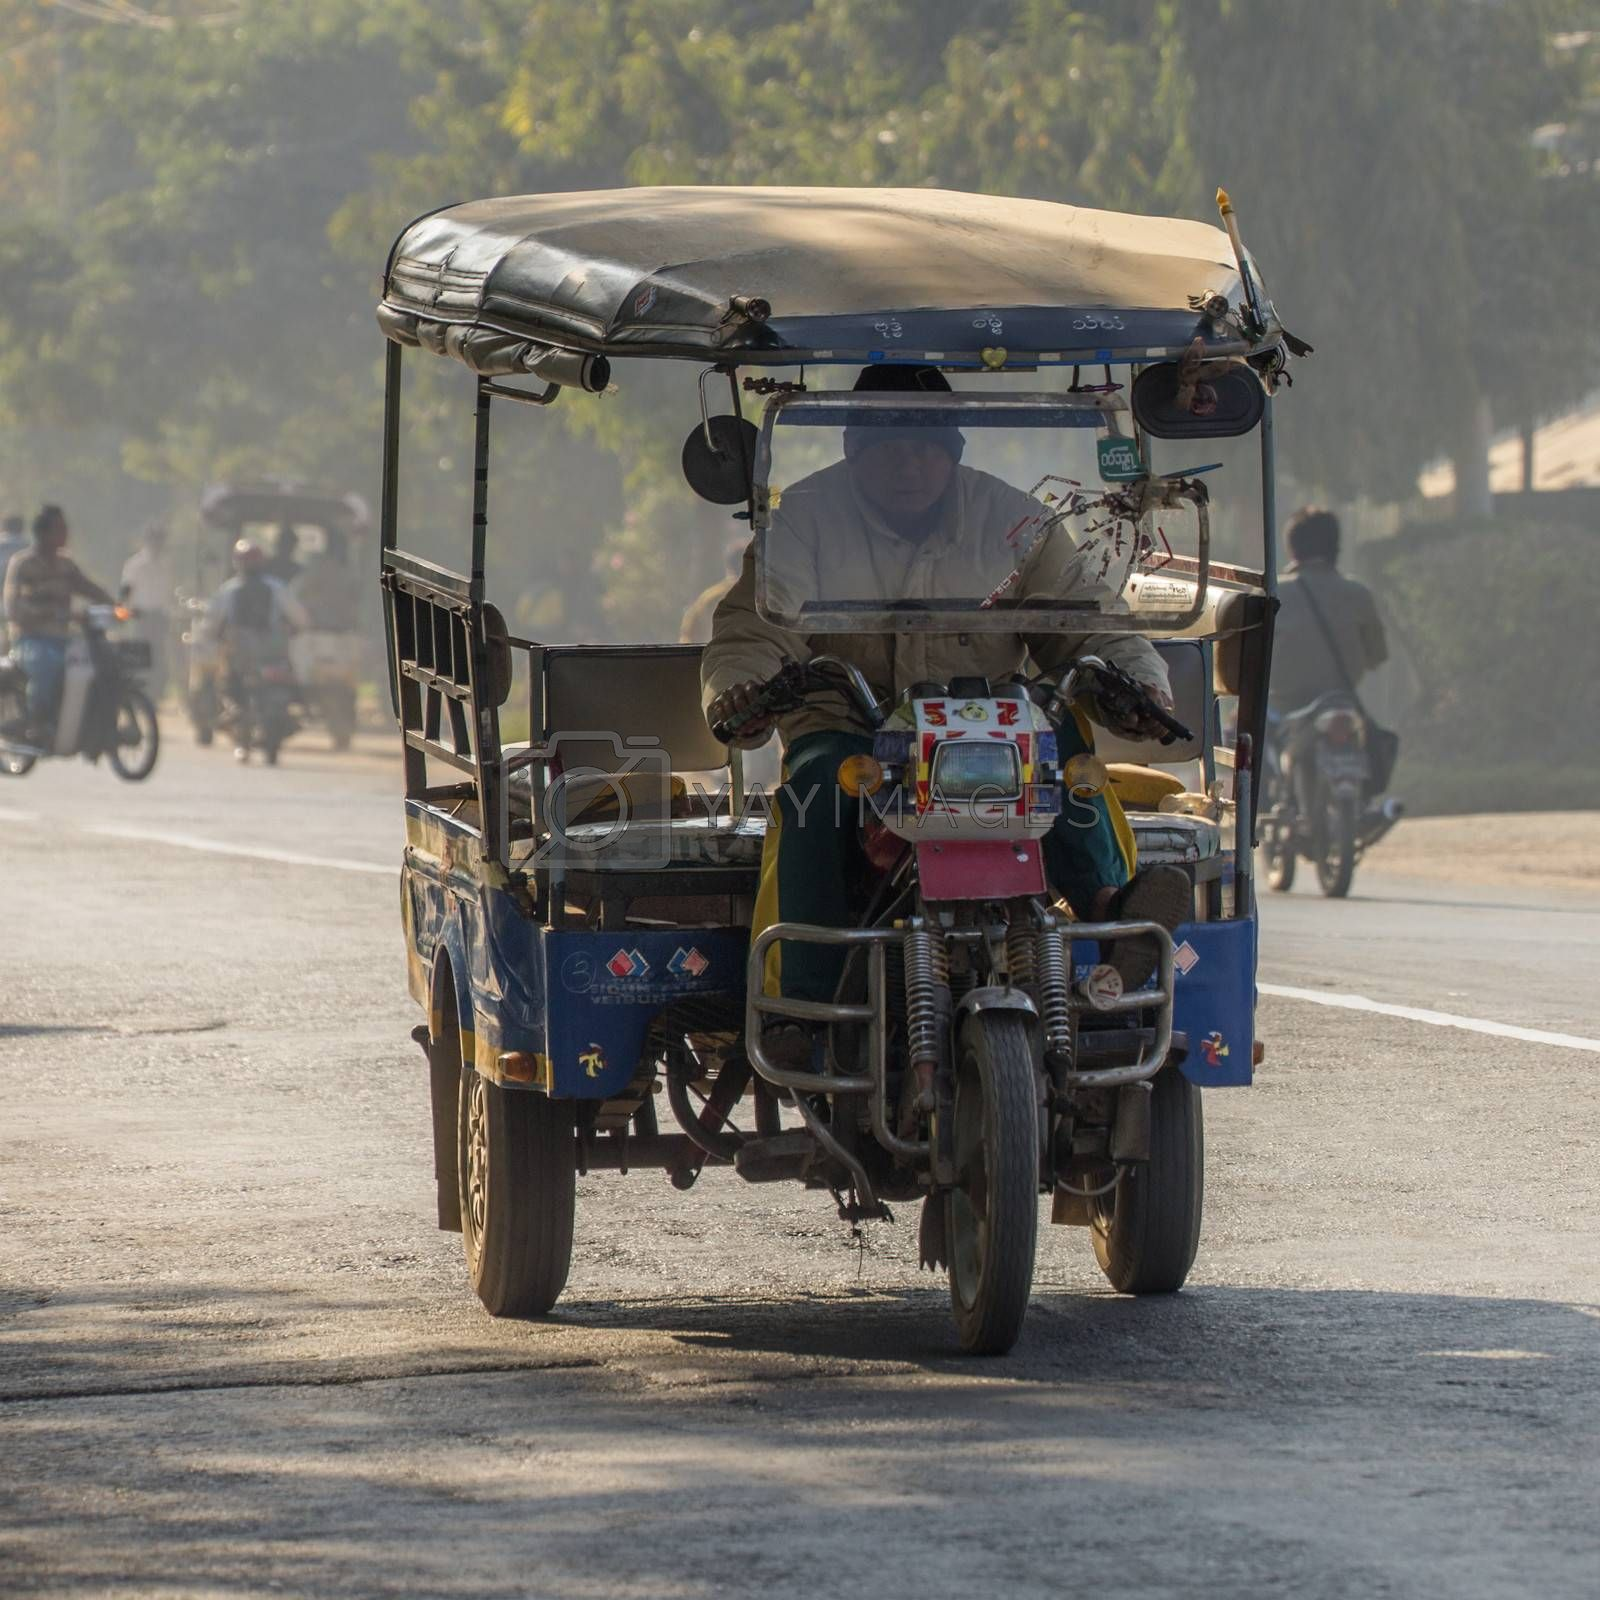 Local transport in the town of Monywa in Sagaing Division of Myanmar (Burma).